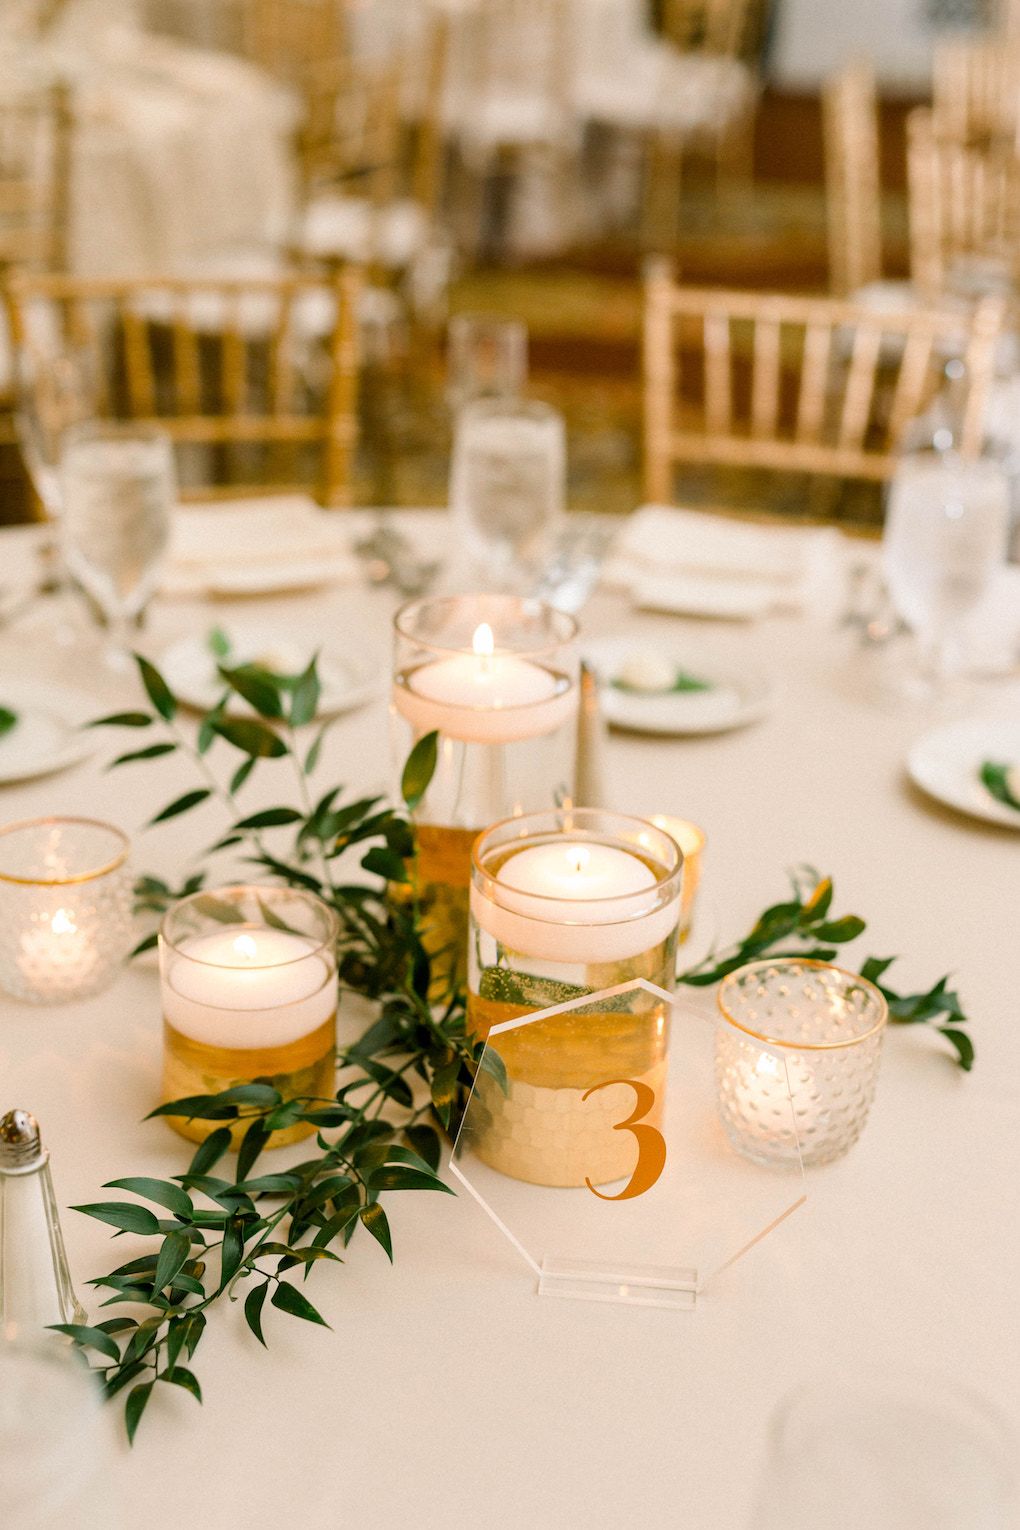 Greenery and gold wedding centerpieces: Romantic Fairytale wedding at the Omni William Penn in Pittsburgh, PA planned by Exhale Events. Find more wedding inspiration at exhale-events.com!